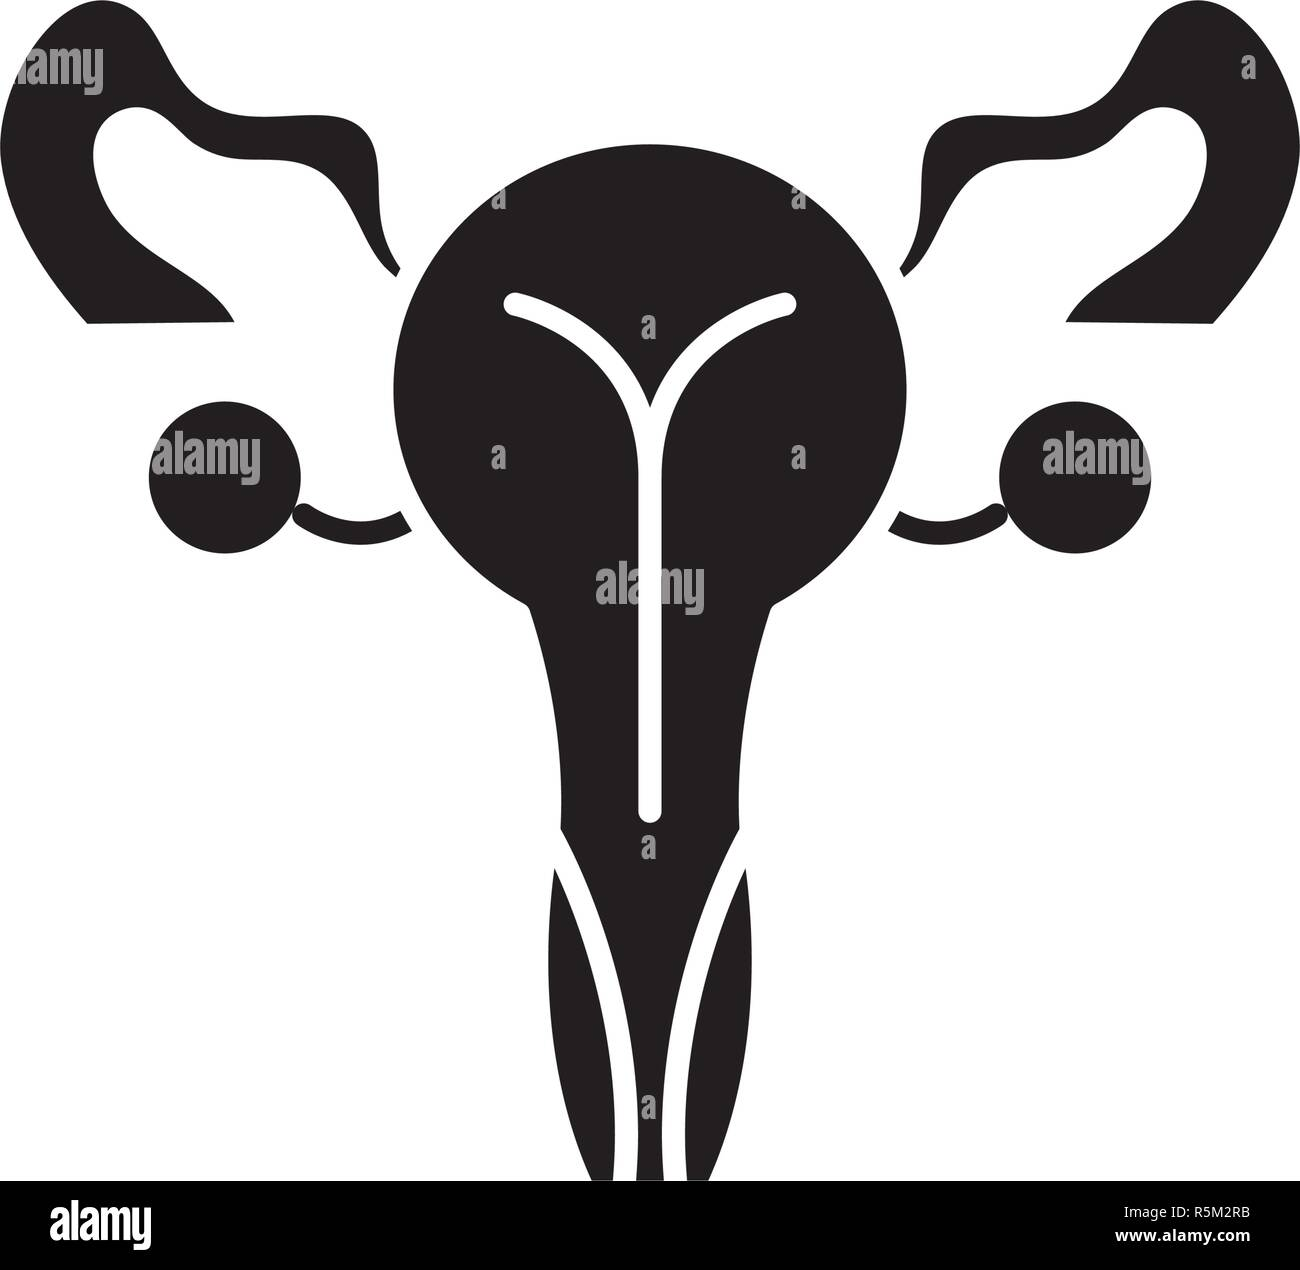 Female genitals black icon, vector sign on isolated background. Female genitals concept symbol, illustration  - Stock Image